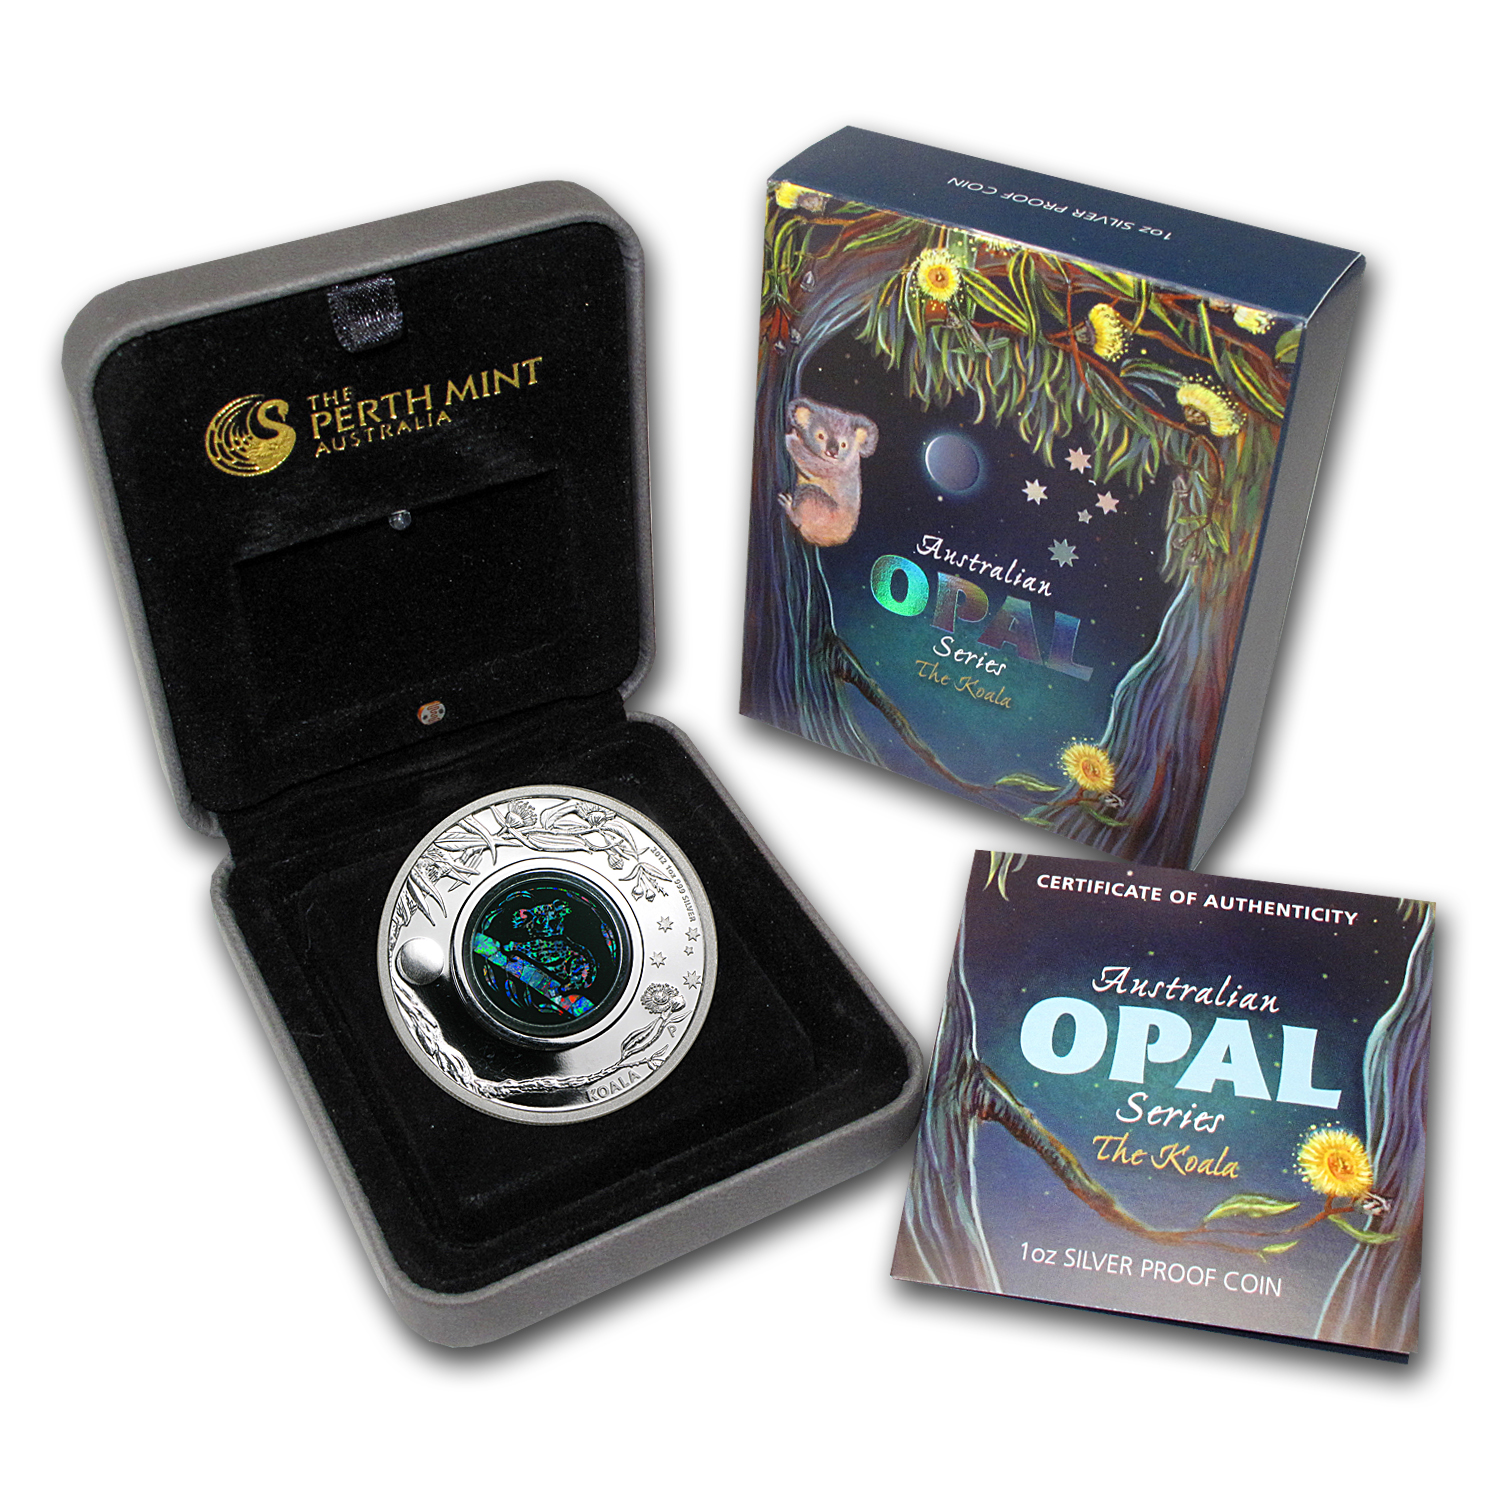 2012 1 oz Proof Silver Koala- Australian Opal Series